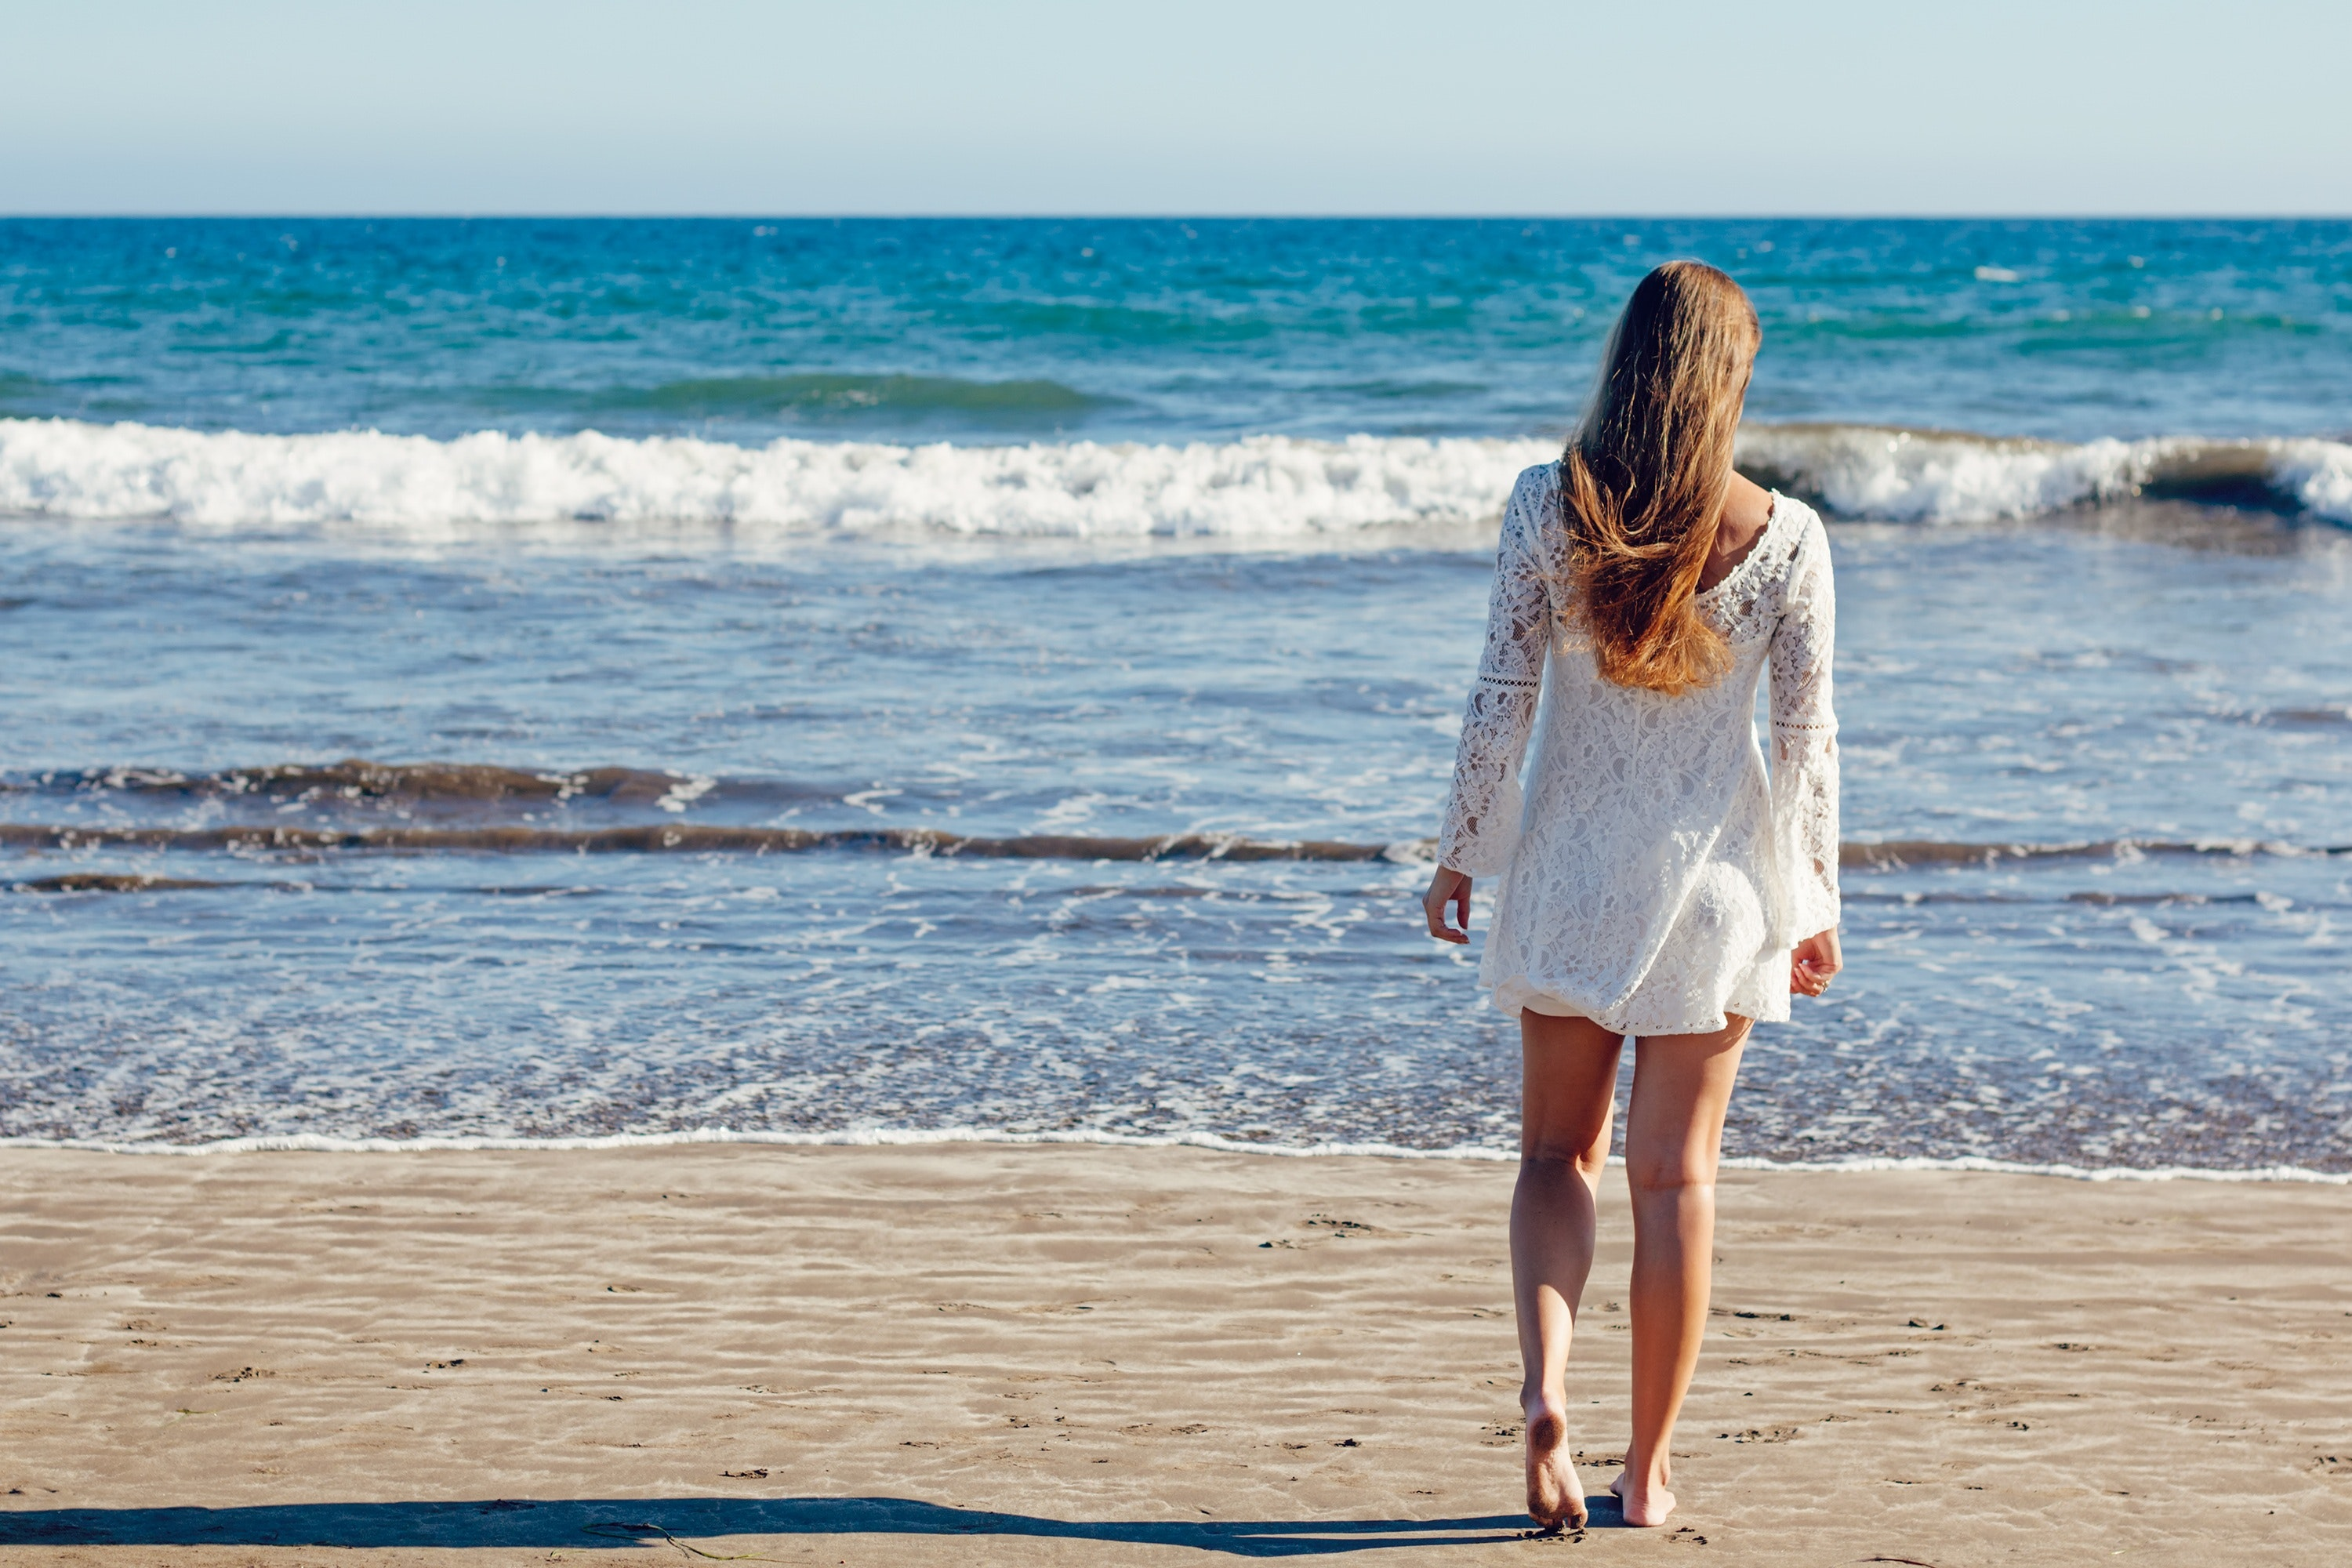 Brown Haired Woman in White Lace Long Sleeve Mini Dress Standing on Seashore, Travel, Tropical, Surf, Sun, HQ Photo